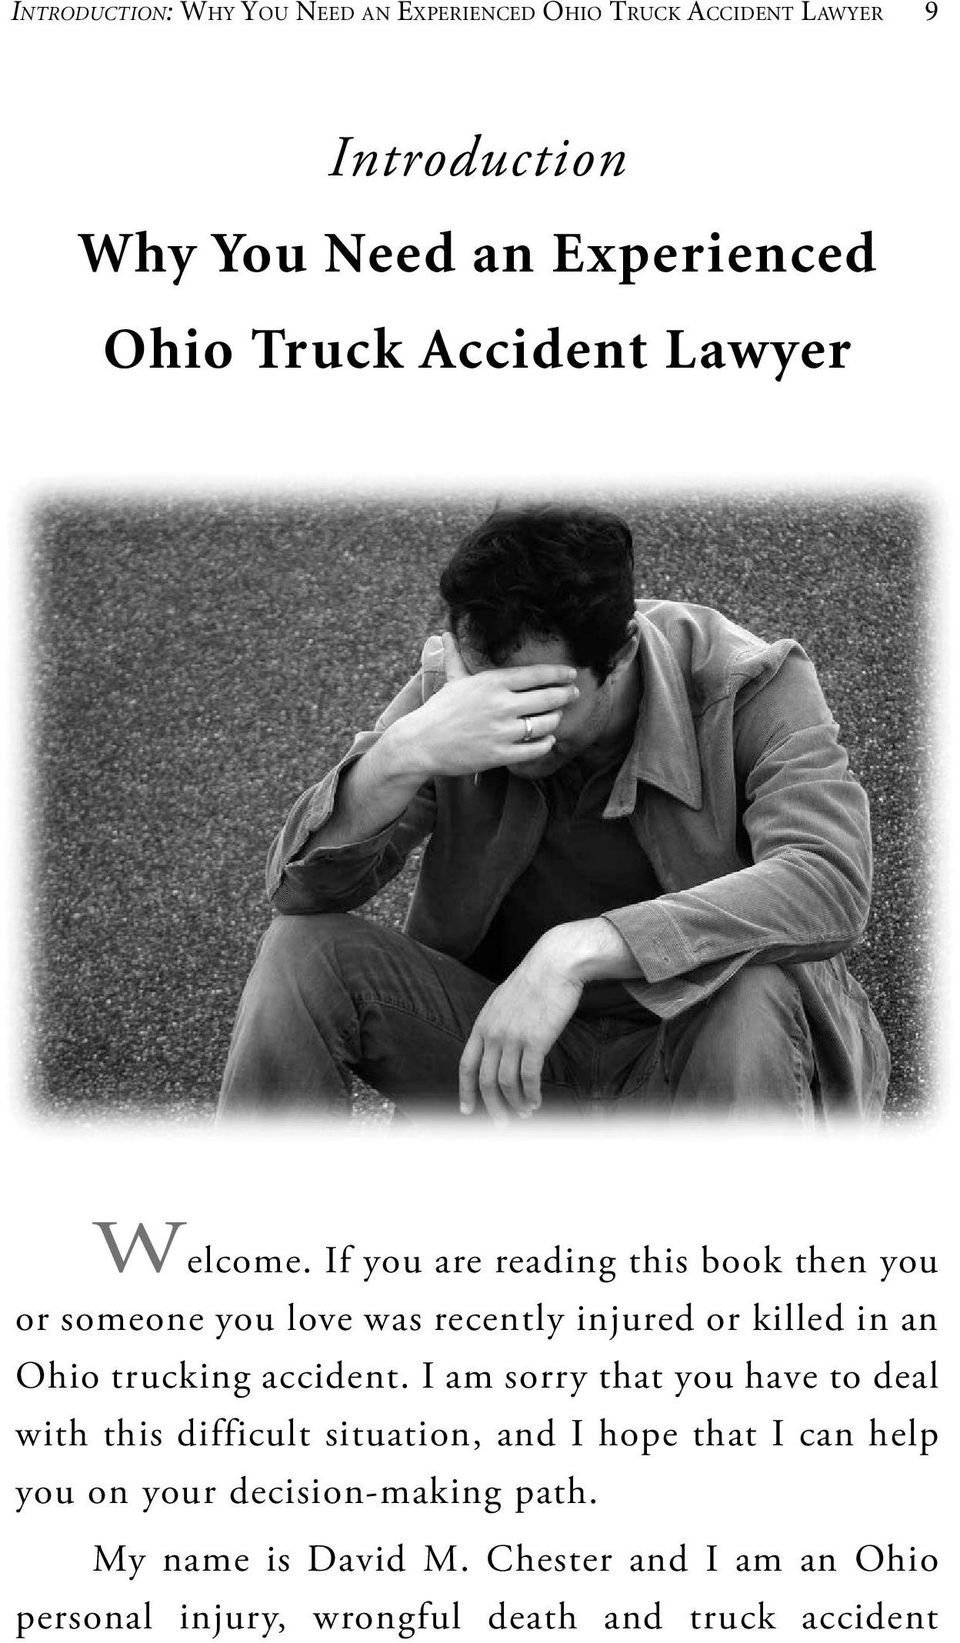 If you are reading this book then you or someone you love was recently injured or killed in an Ohio trucking accident.